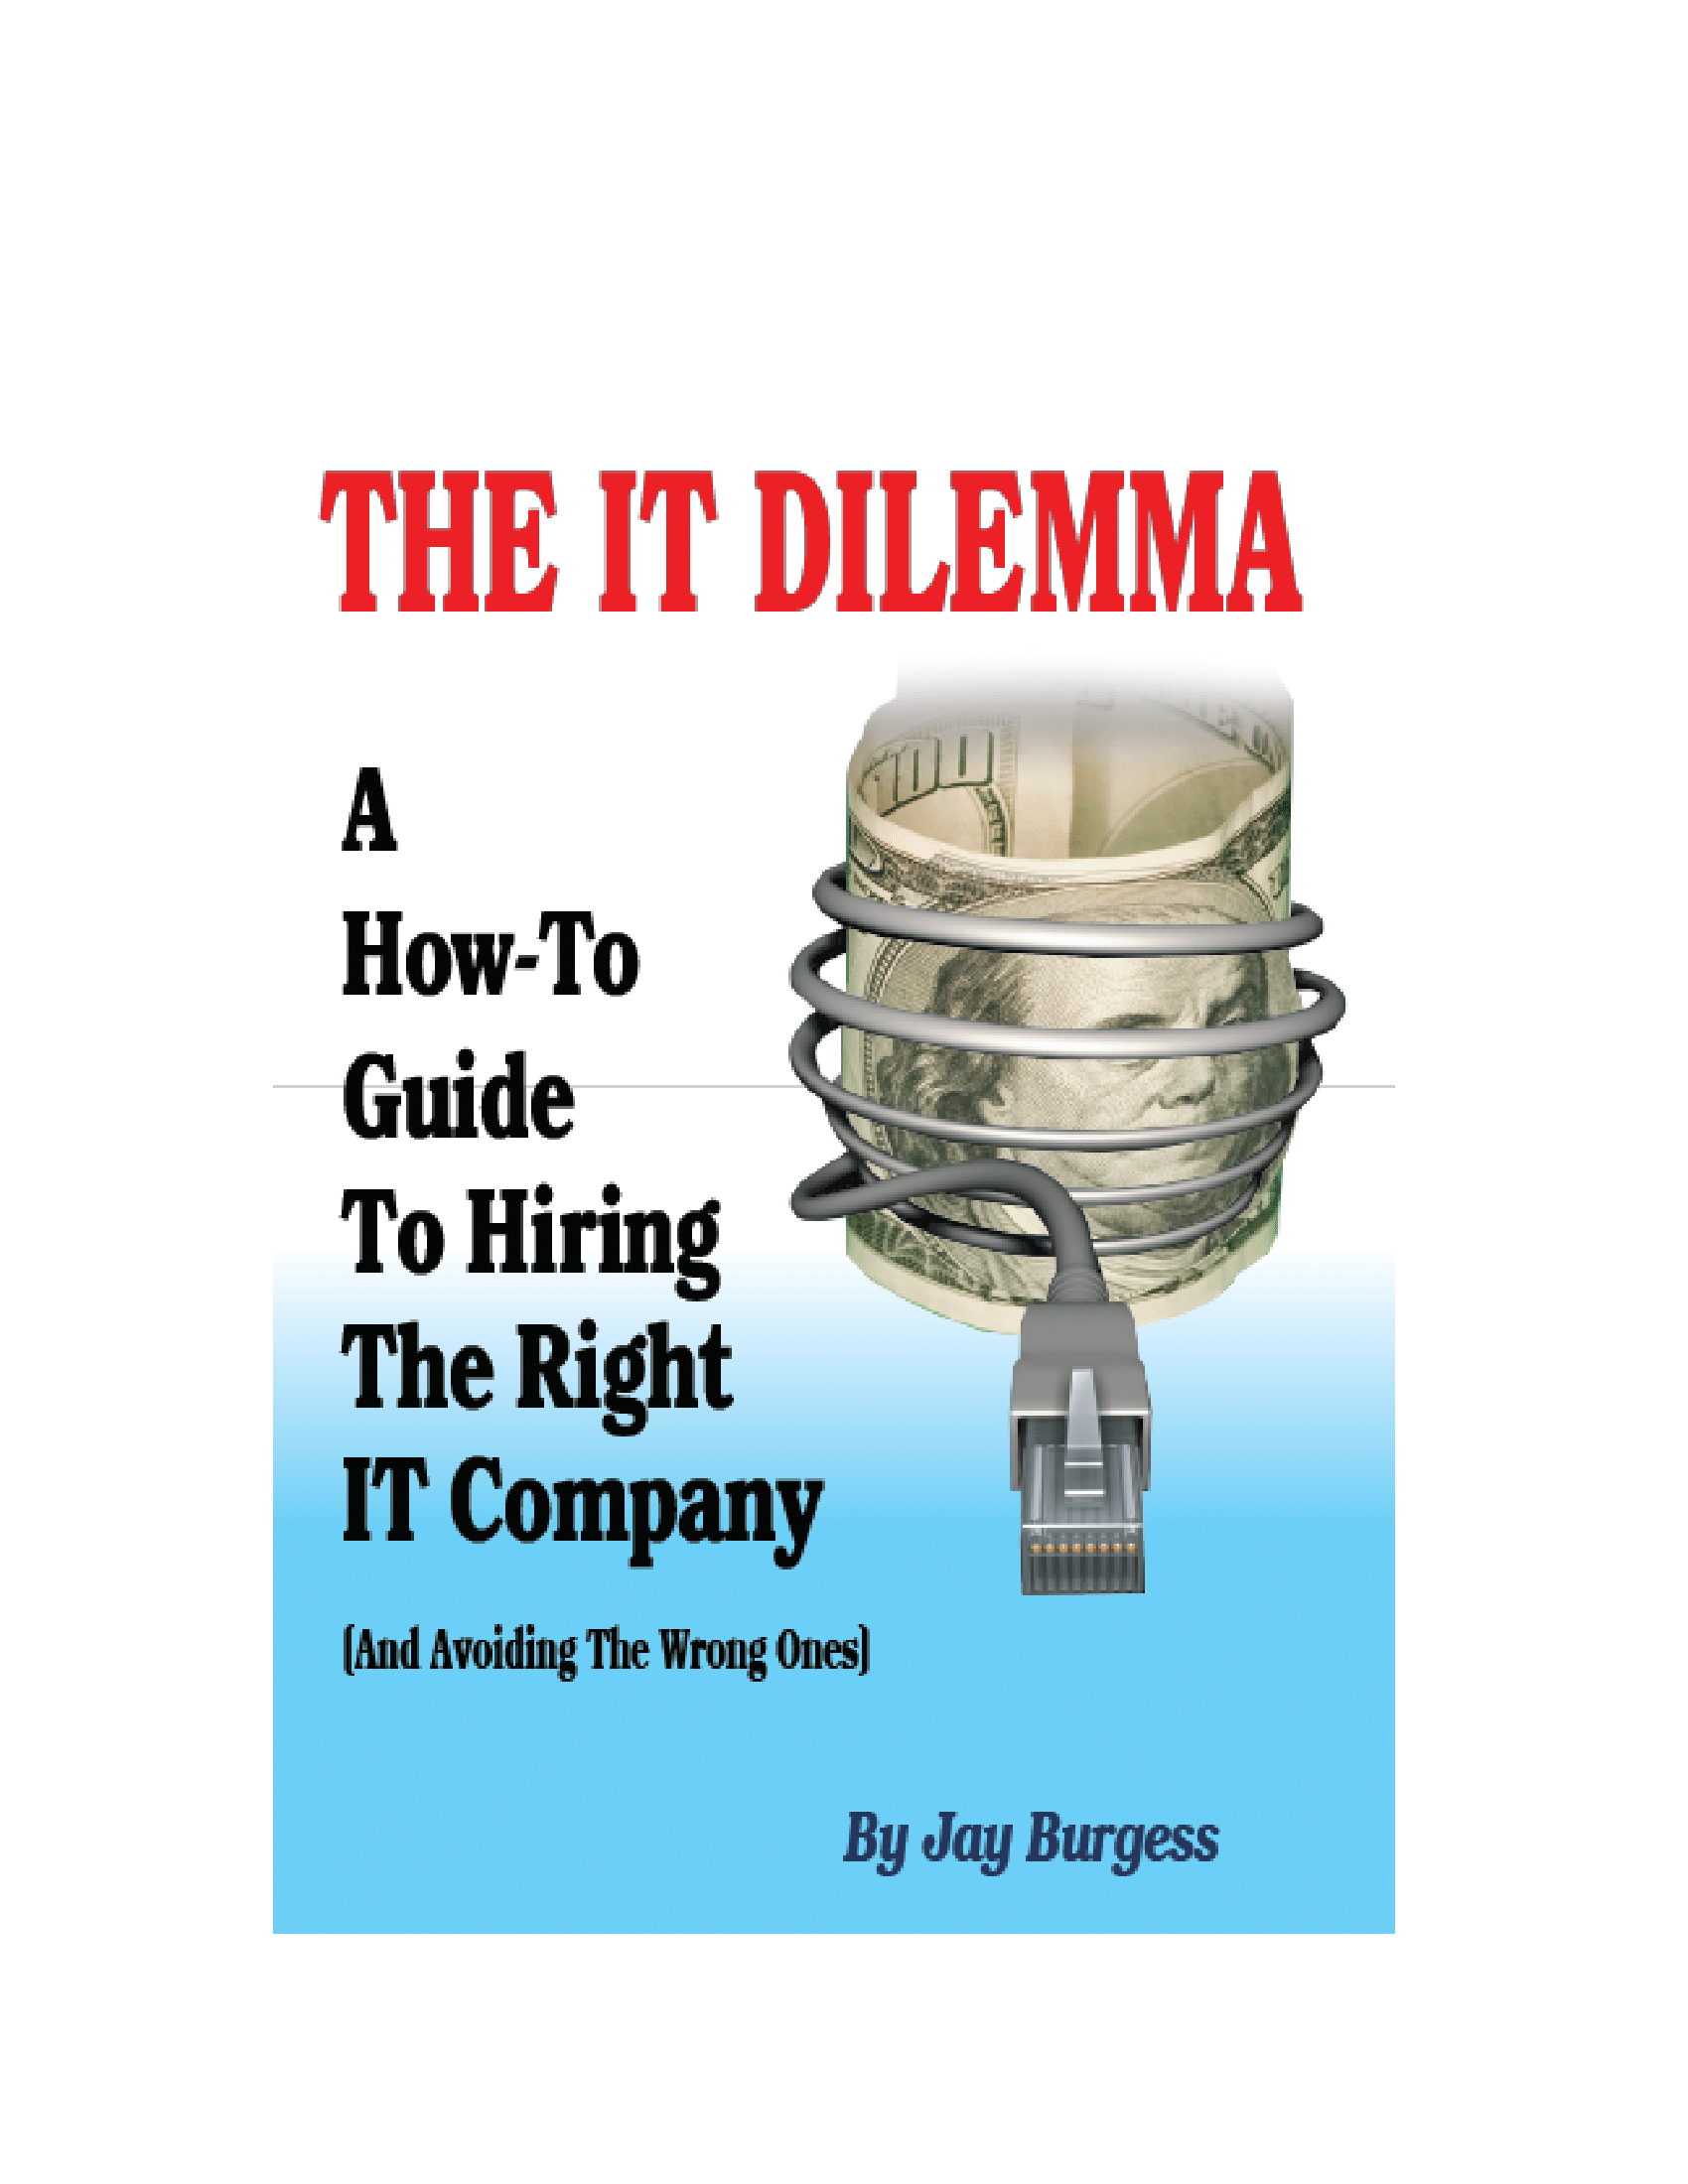 the-it-dilemma-book-jay-burgess-hire-the-right-company-1